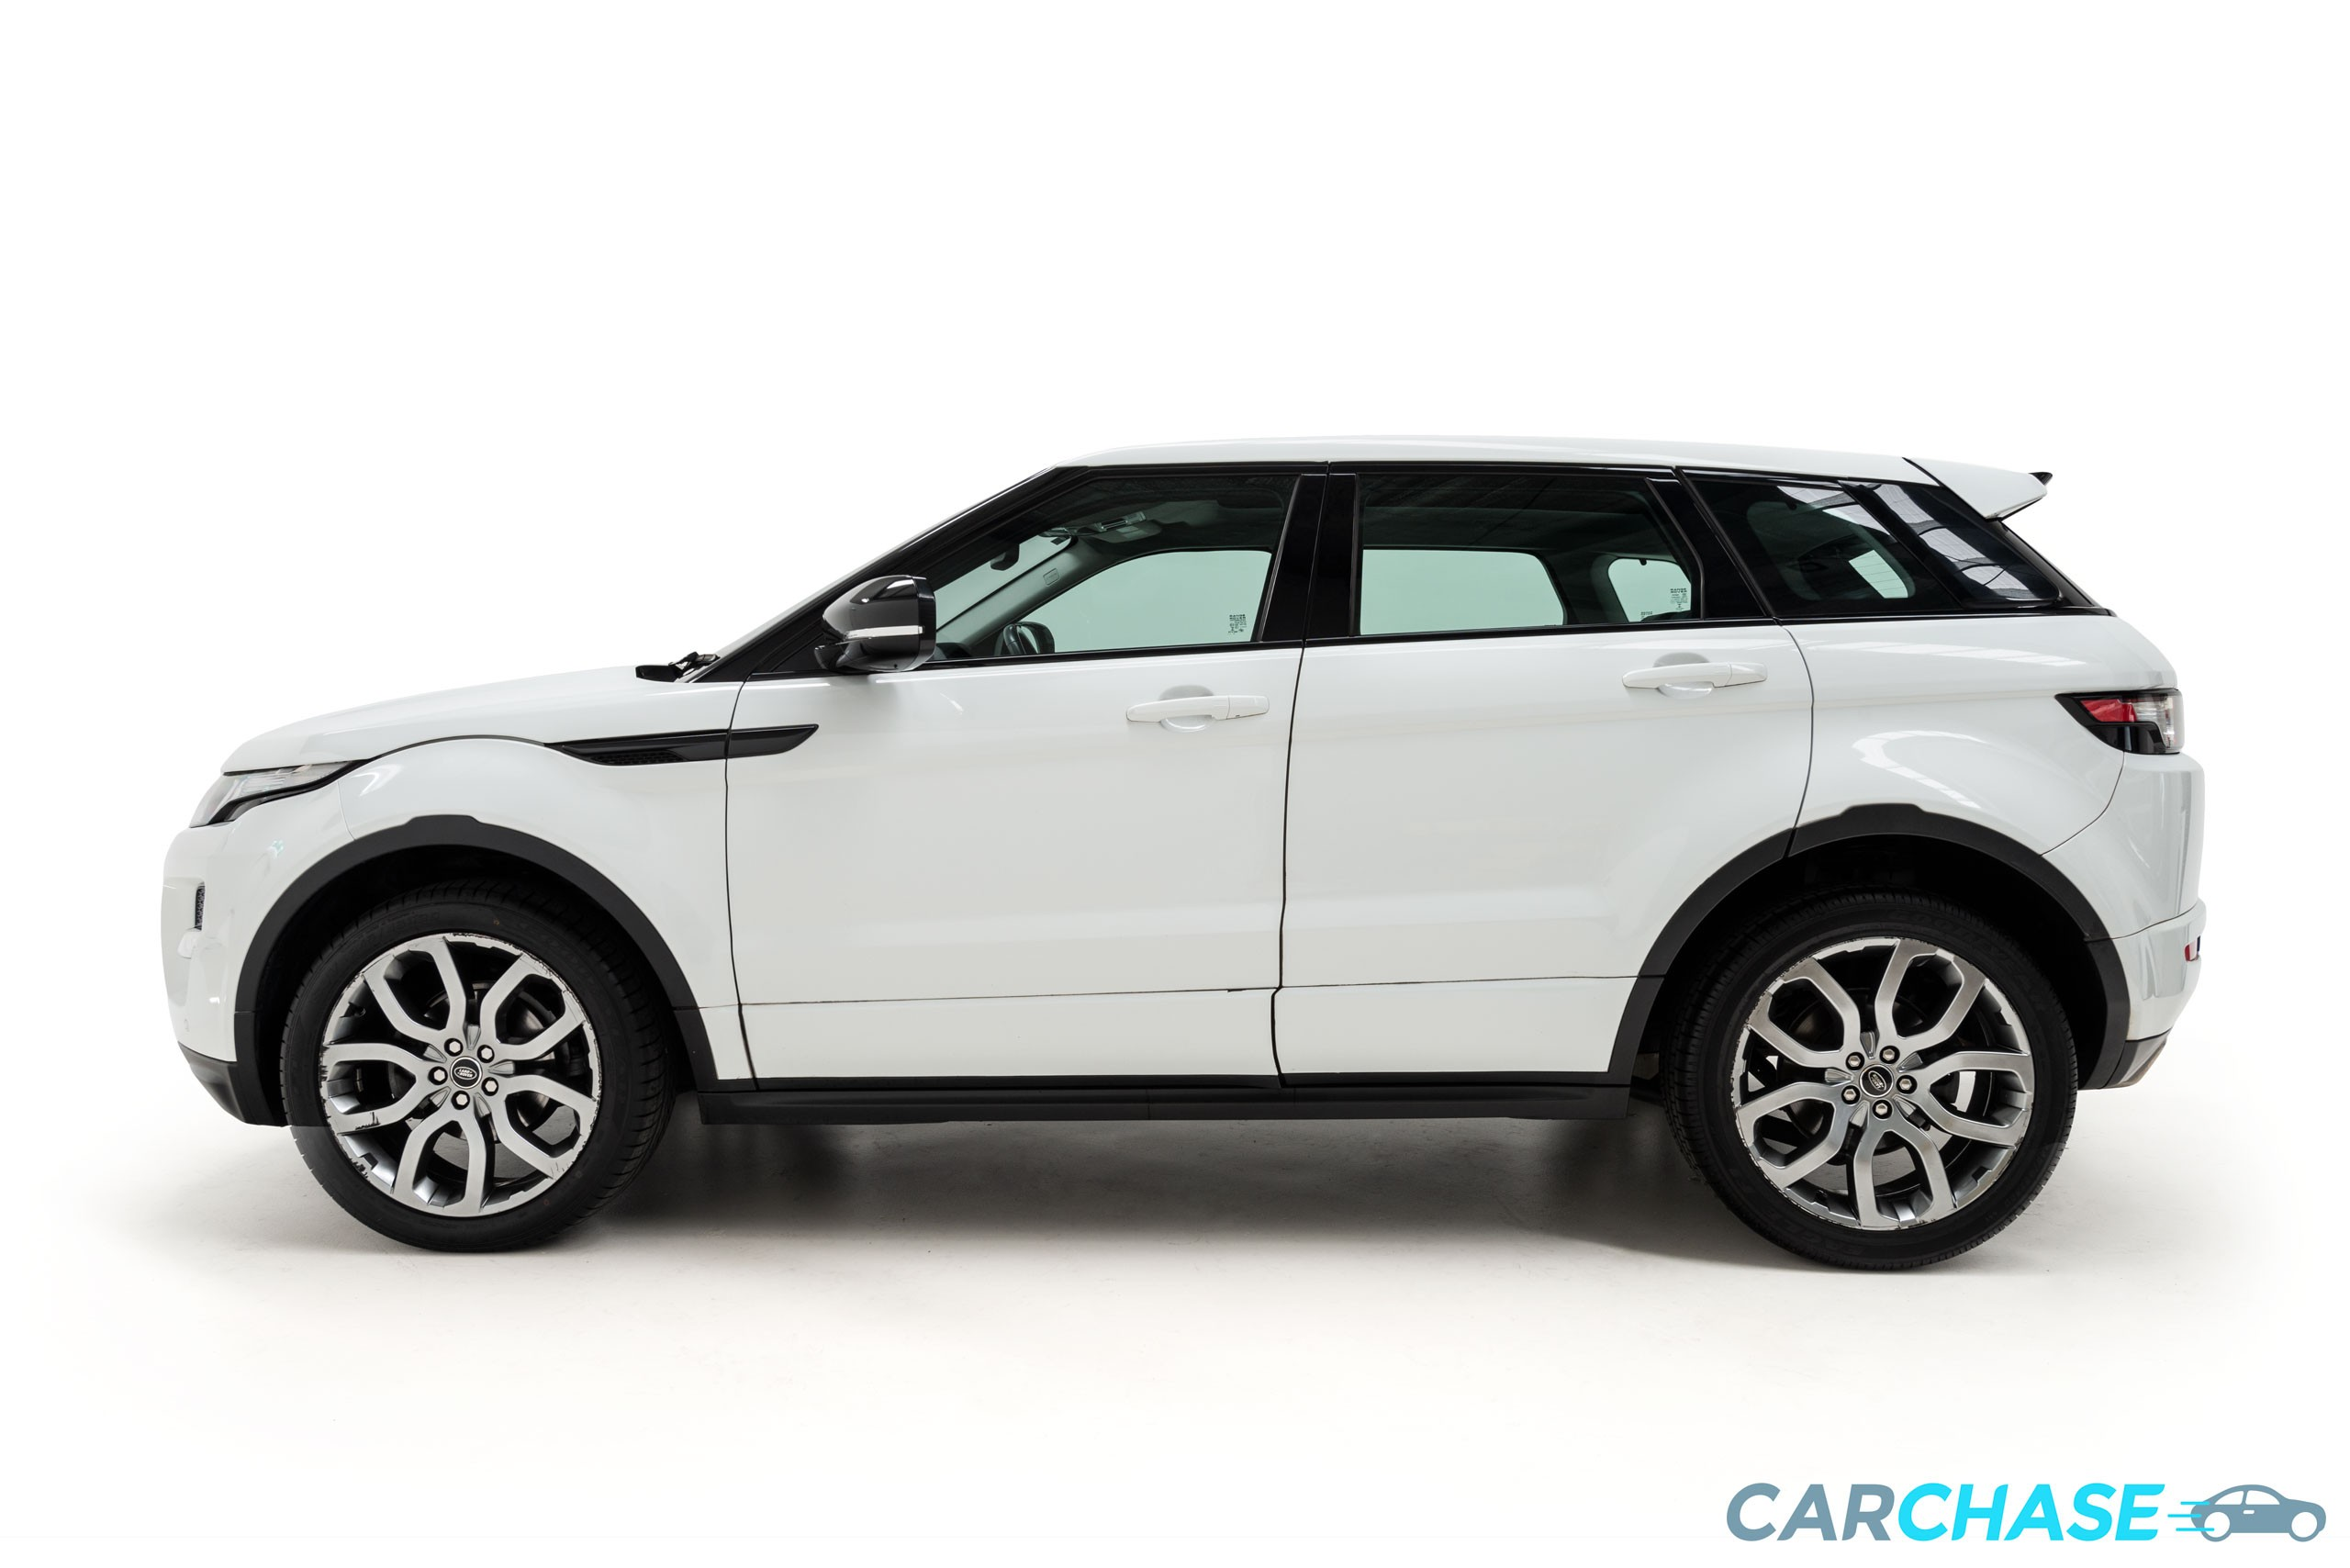 Image of left profile of 2013 Land Rover Range Rover Evoque SD4 Dynamic